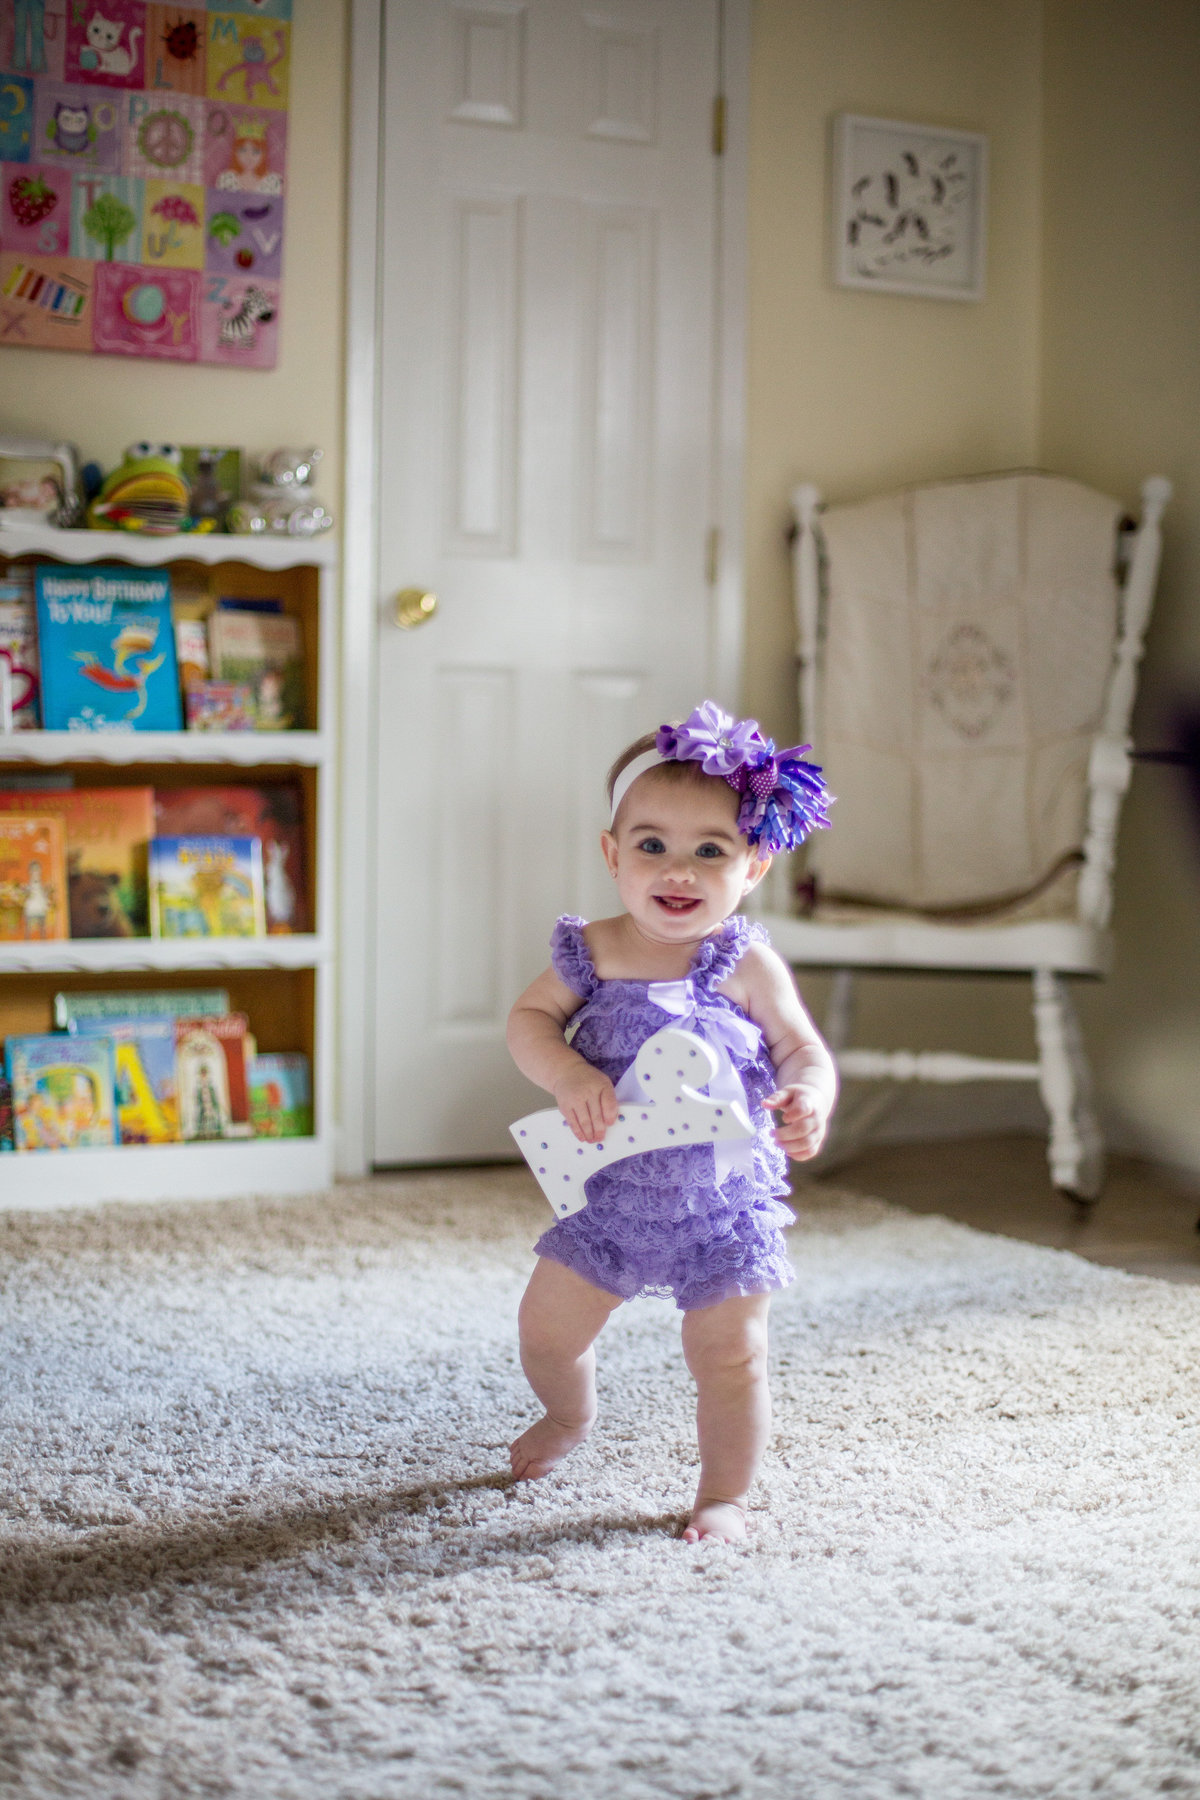 One year old toddler walking in her nursery during an in home photography session in San Antonio.